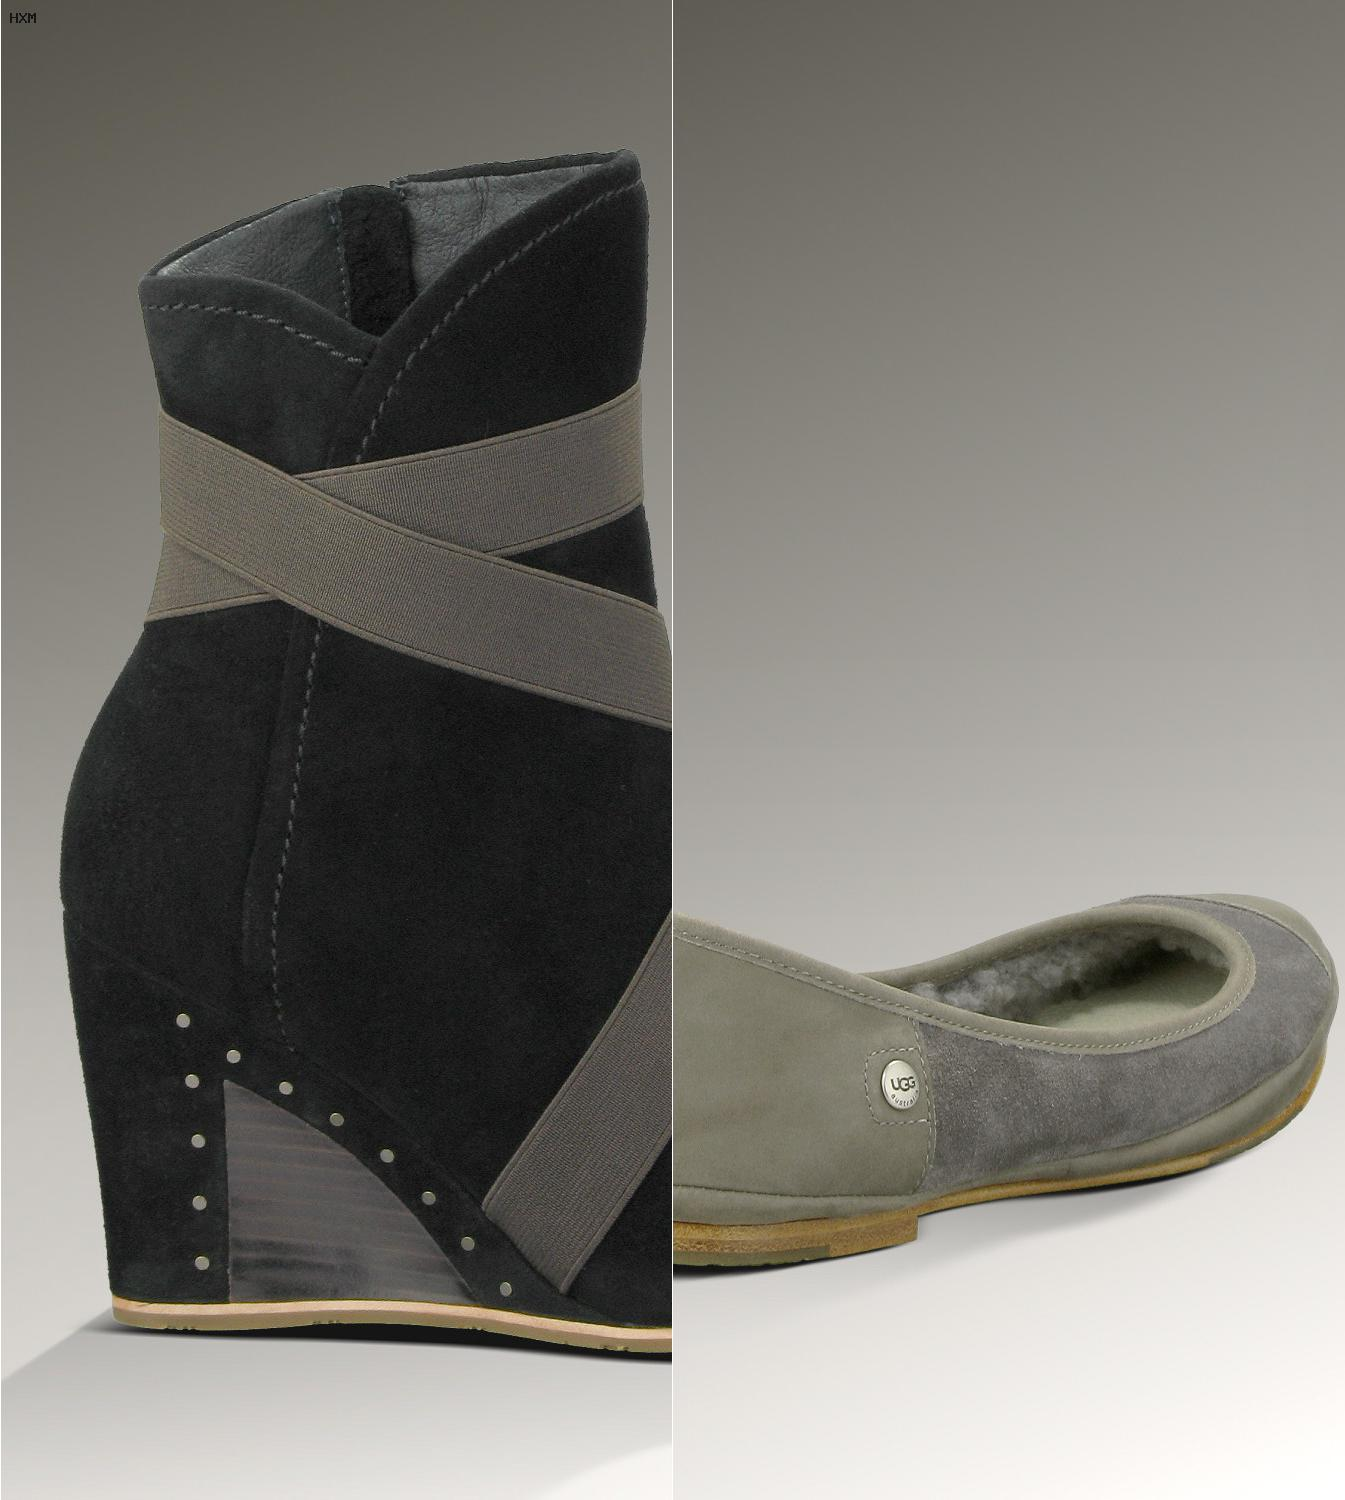 chaussons ugg femme solde